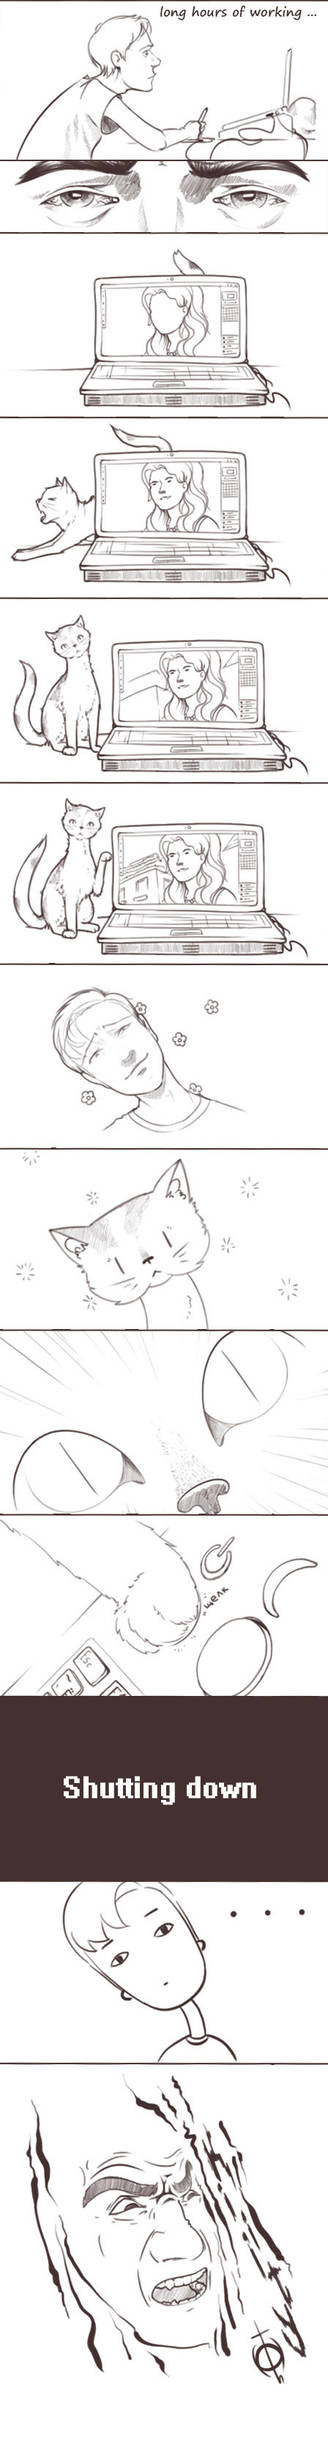 Life with cats by Jorn-Siberian